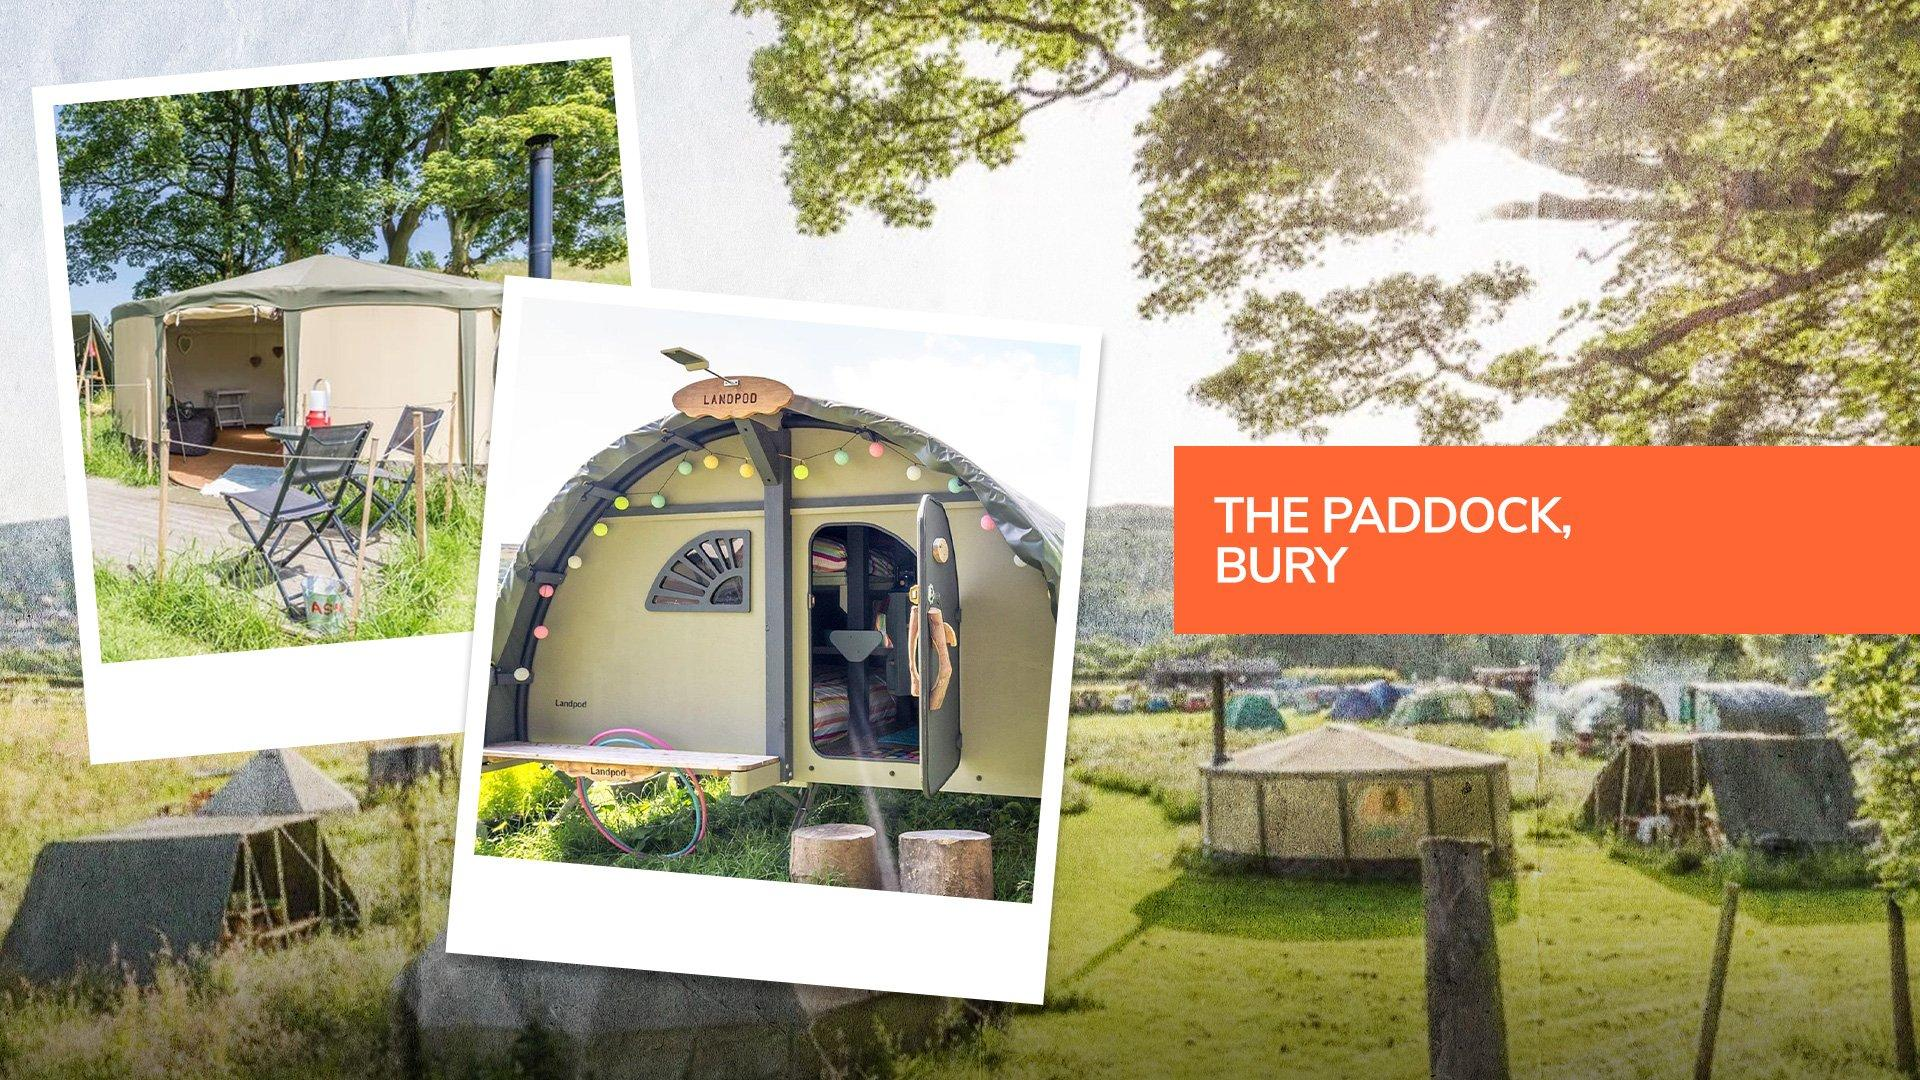 The Paddock, a camping and glamping site in Ramsbottom, Bury near Manchester